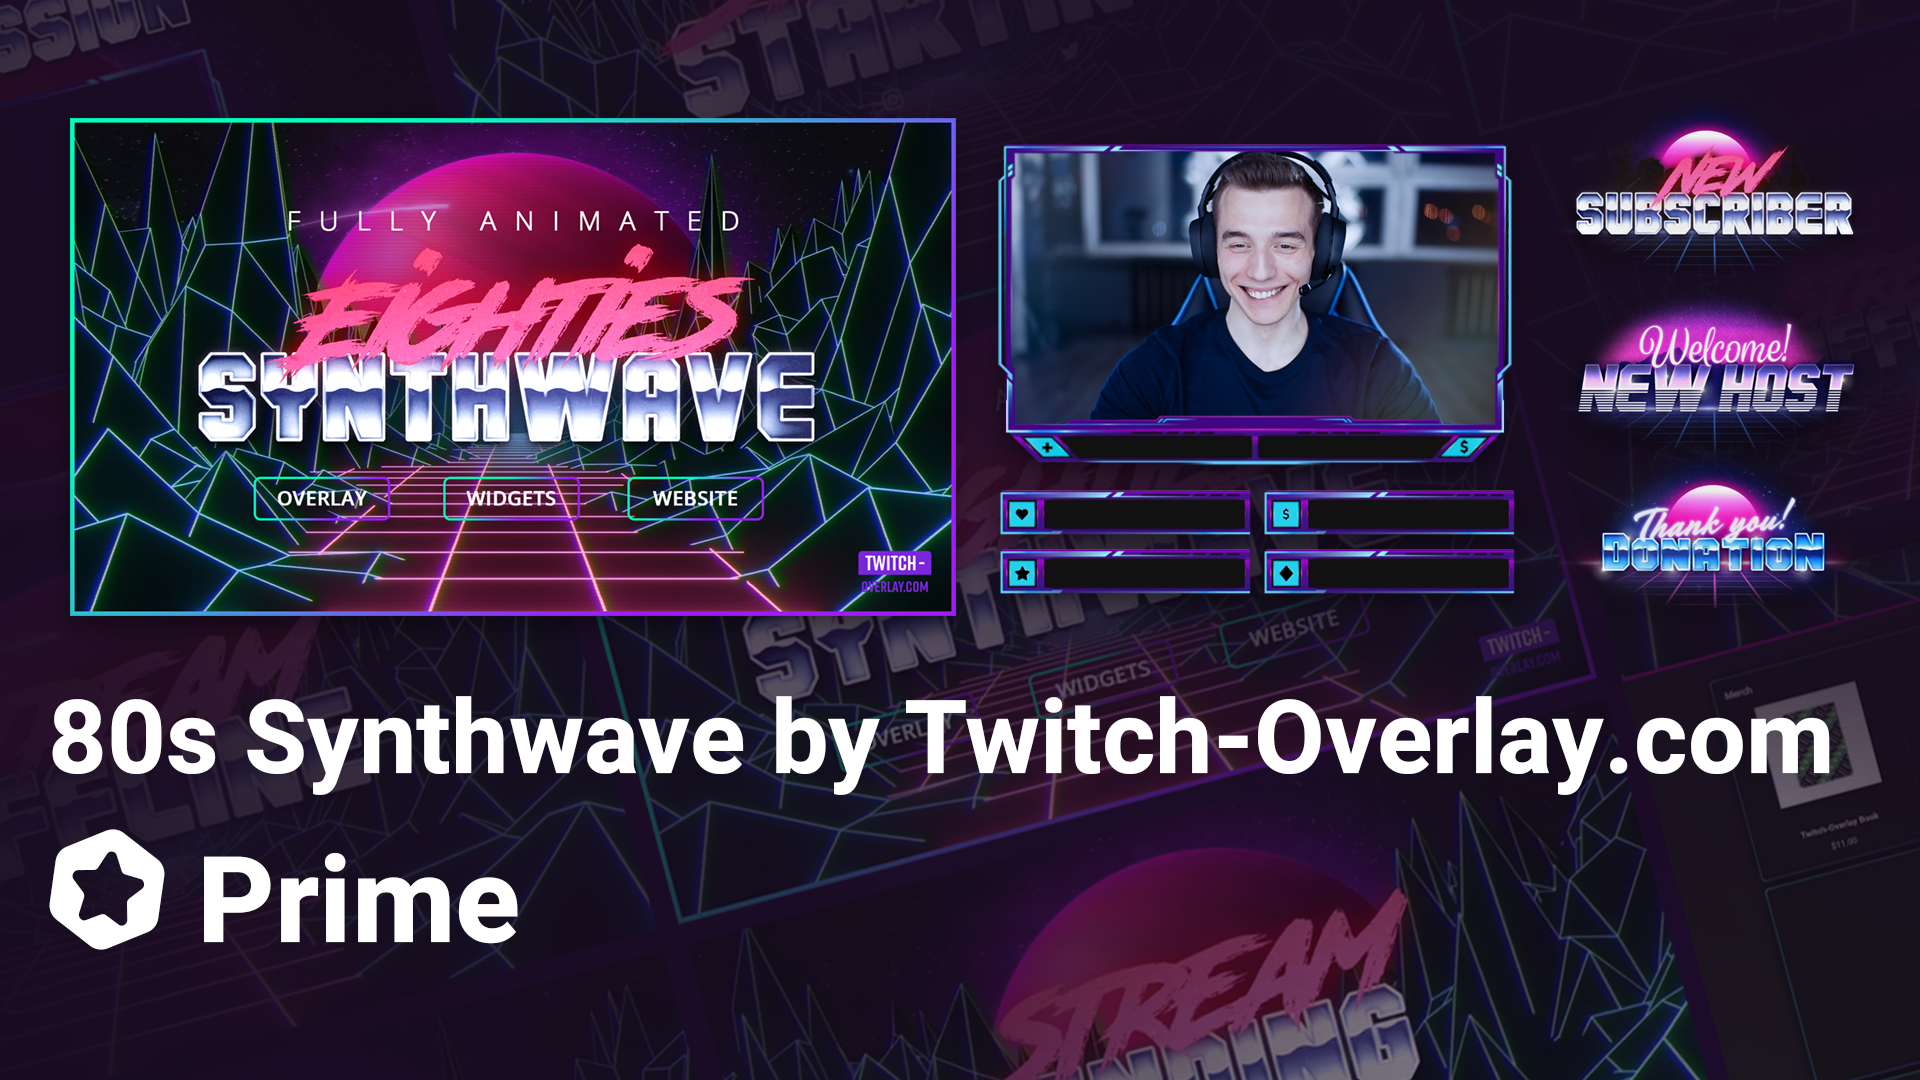 80s Synthwave Stream Overlay Package By Ethan May Streamlabs Blog